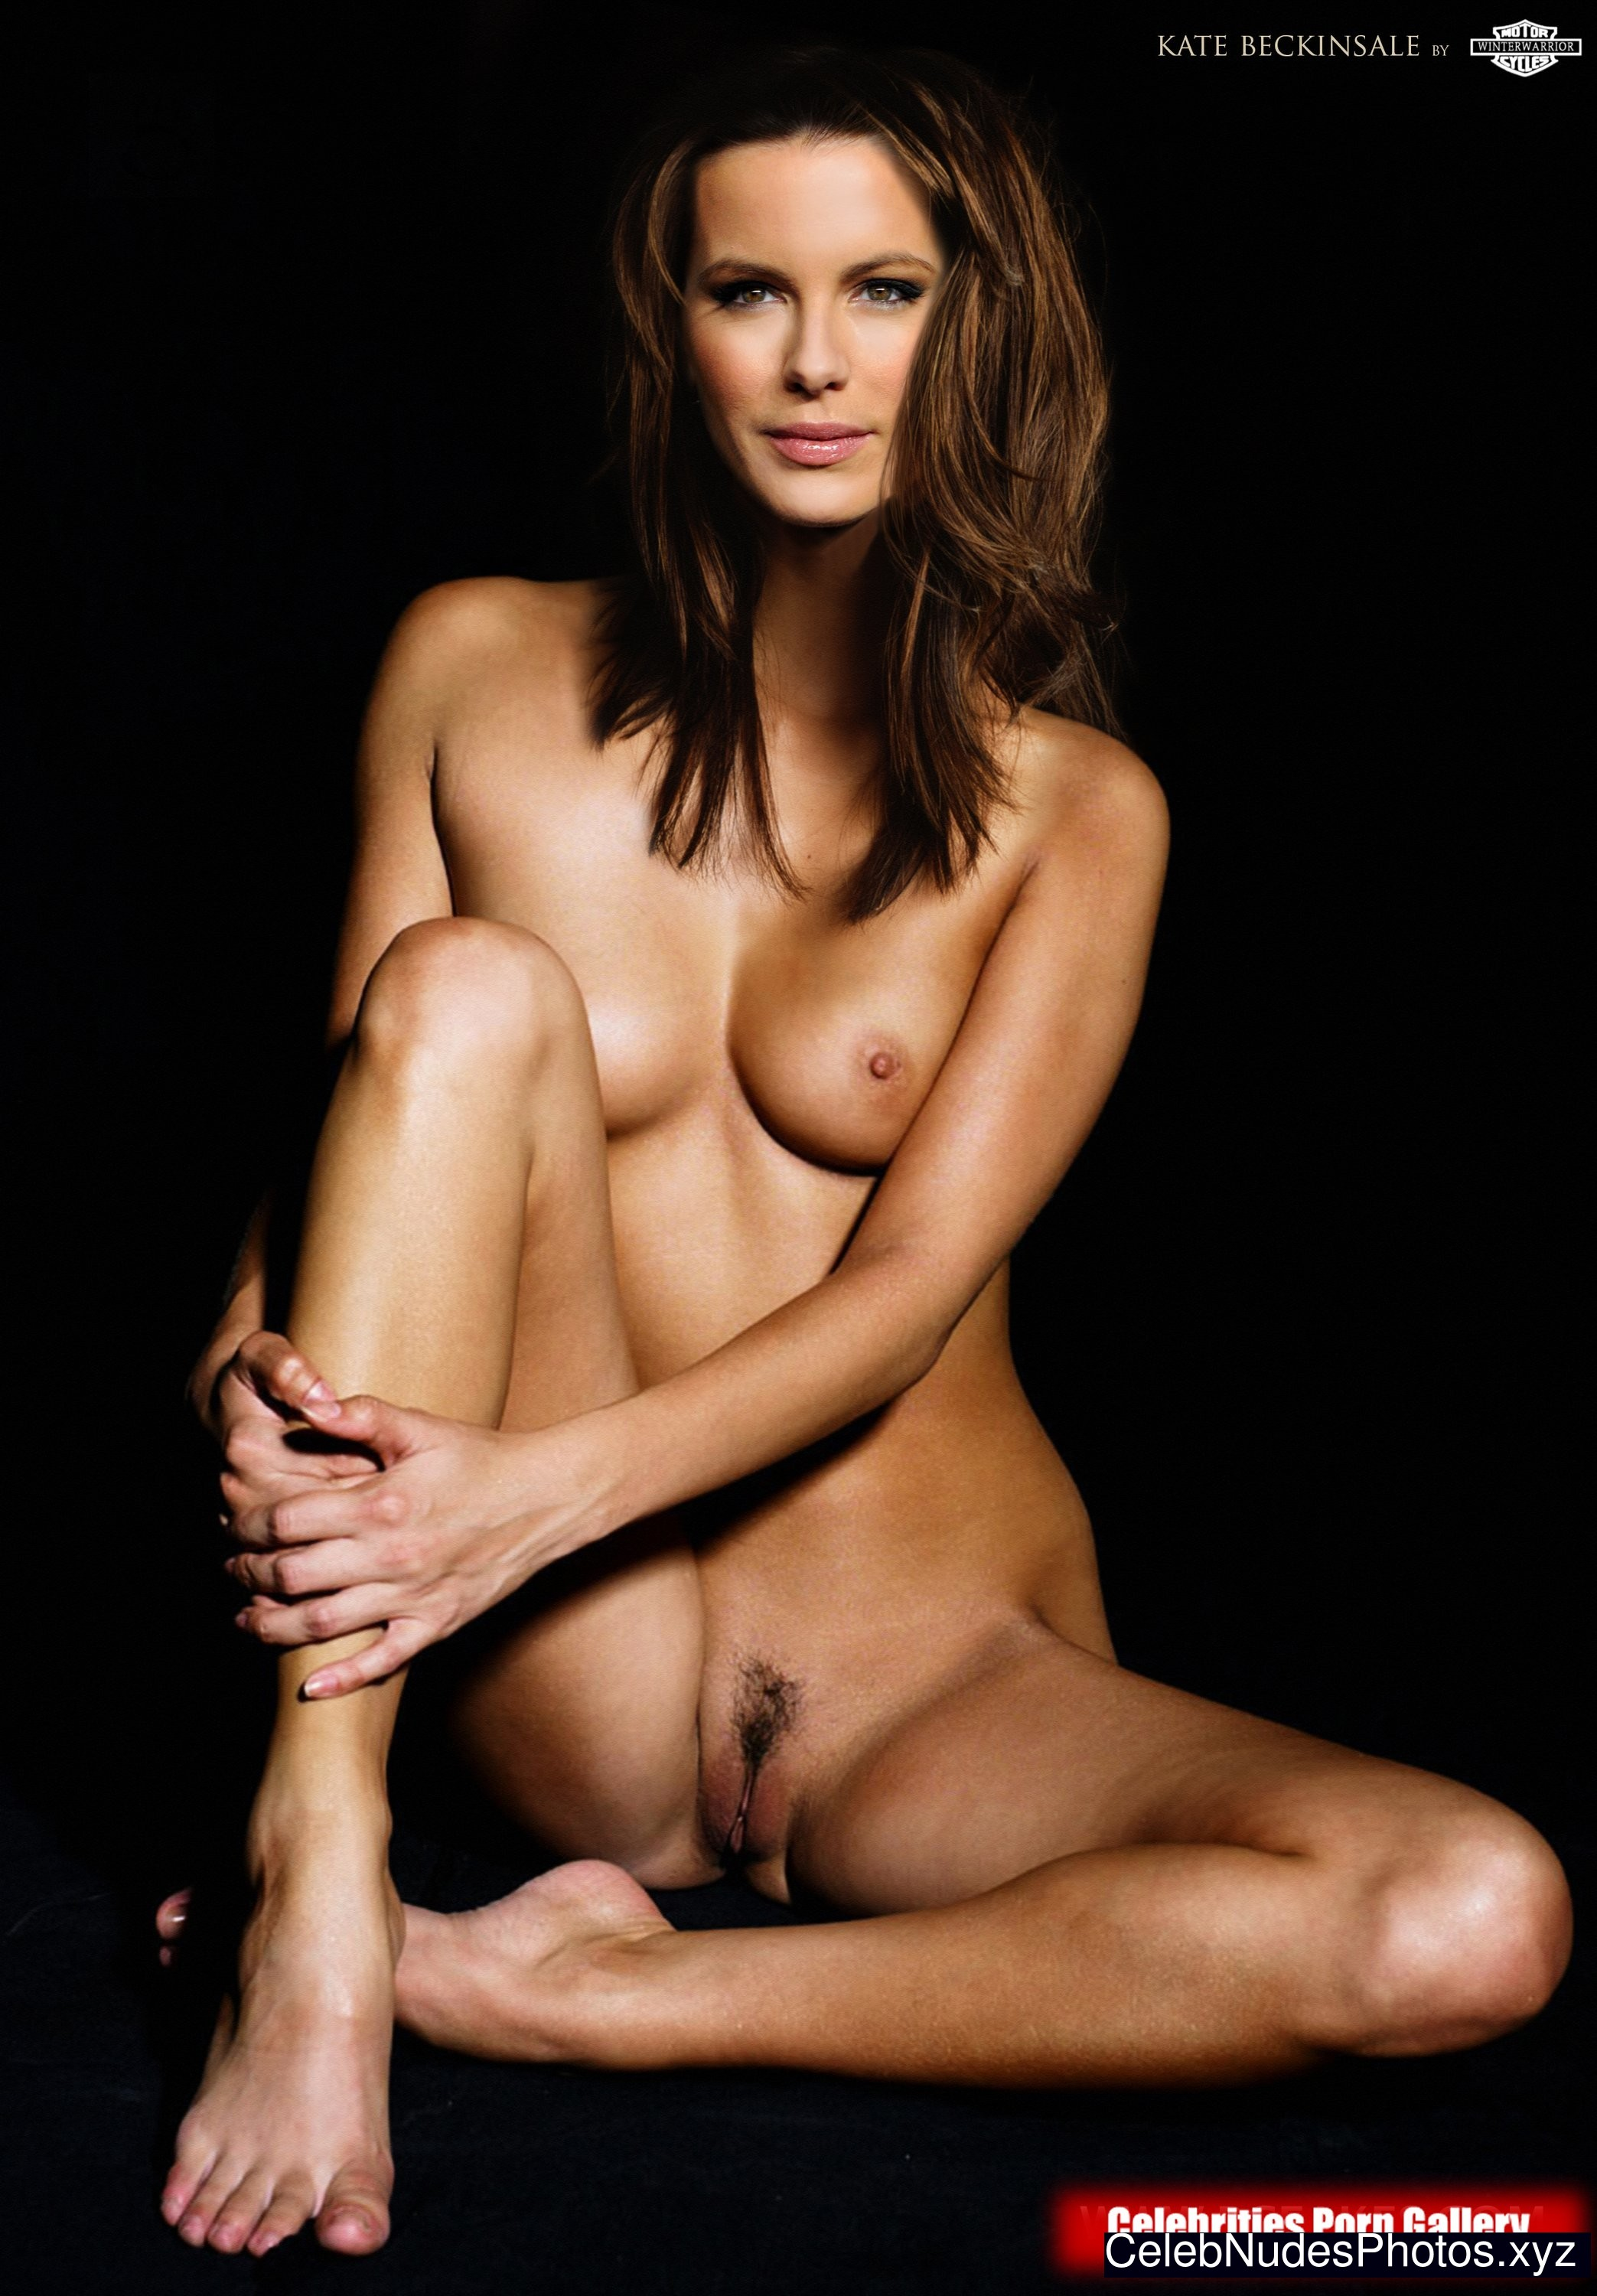 beckinsale nude Kate